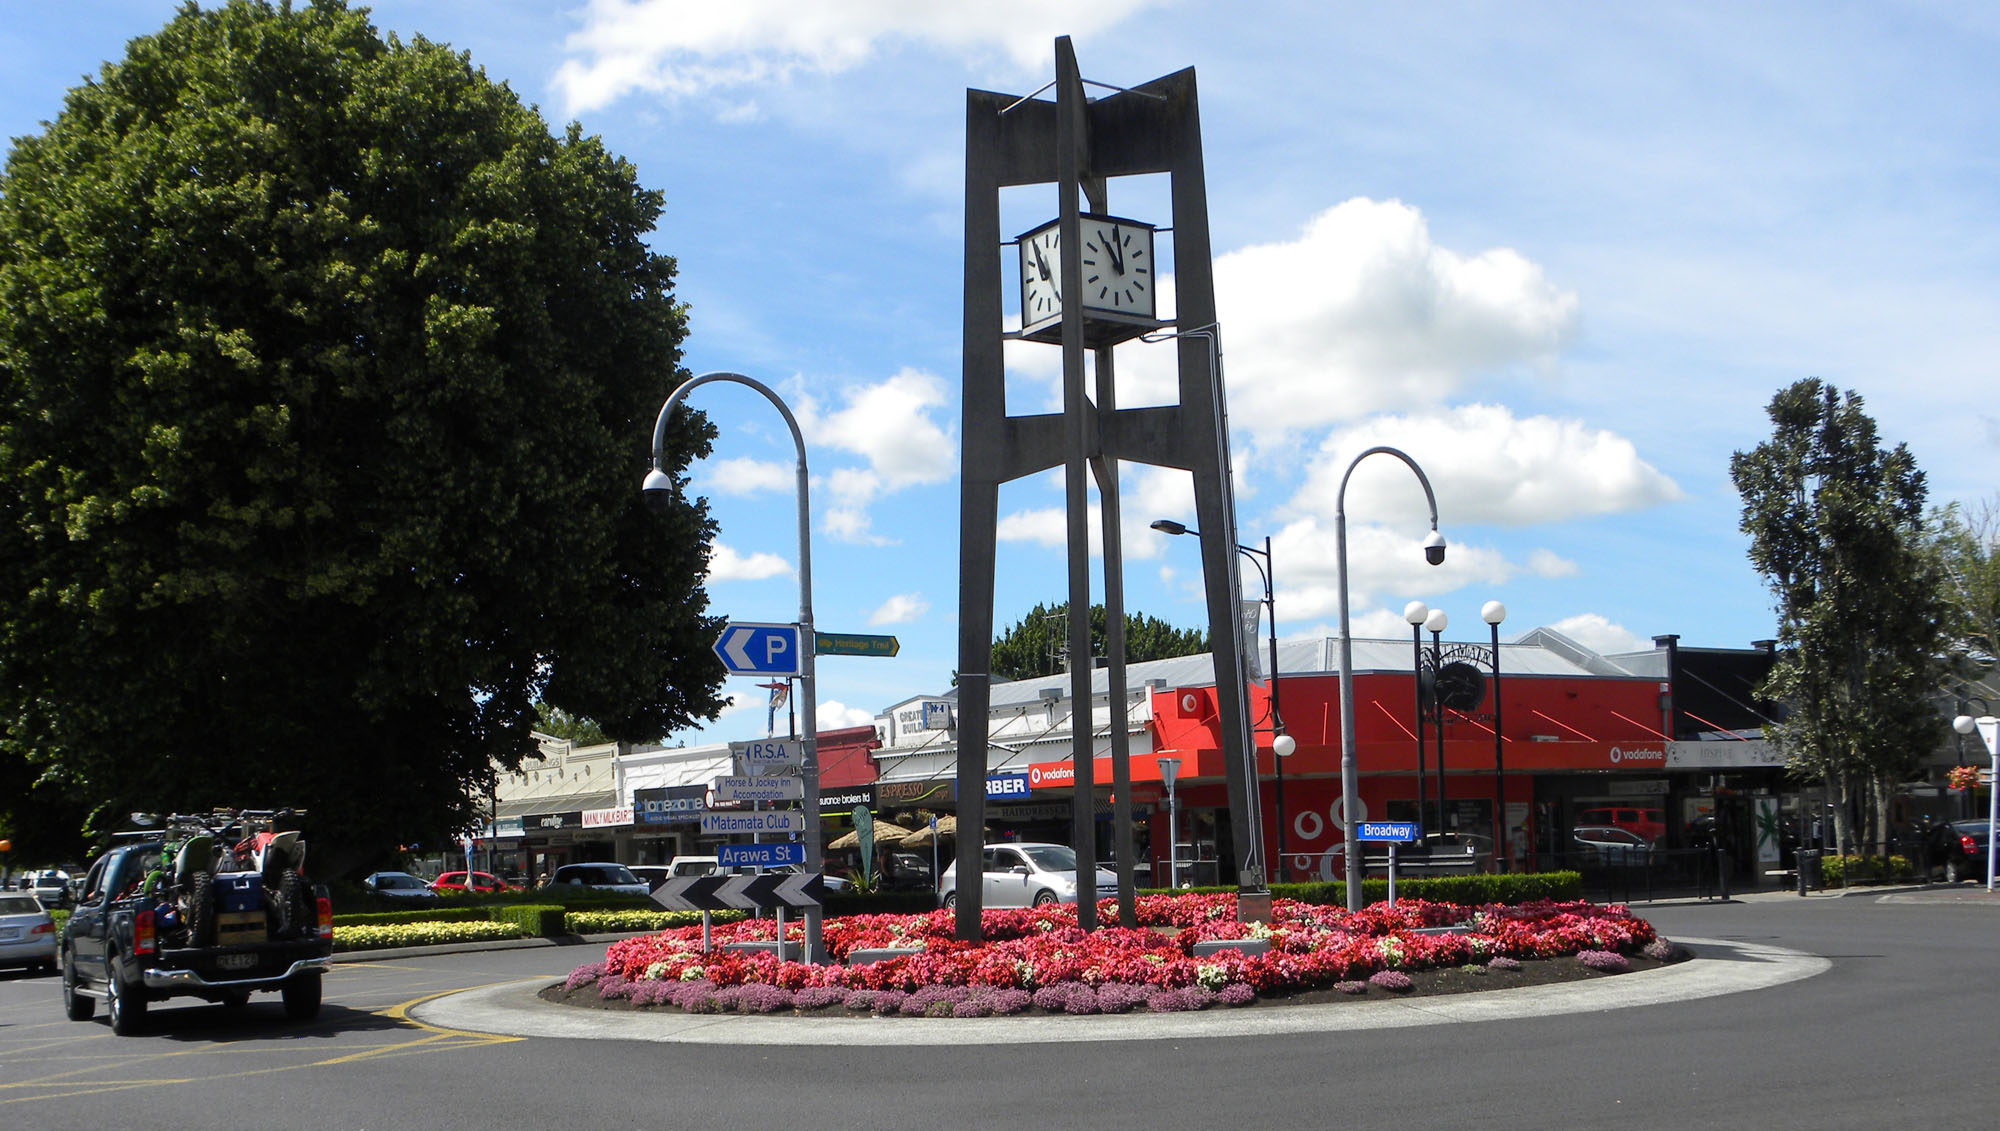 Matamata, New Zealand center